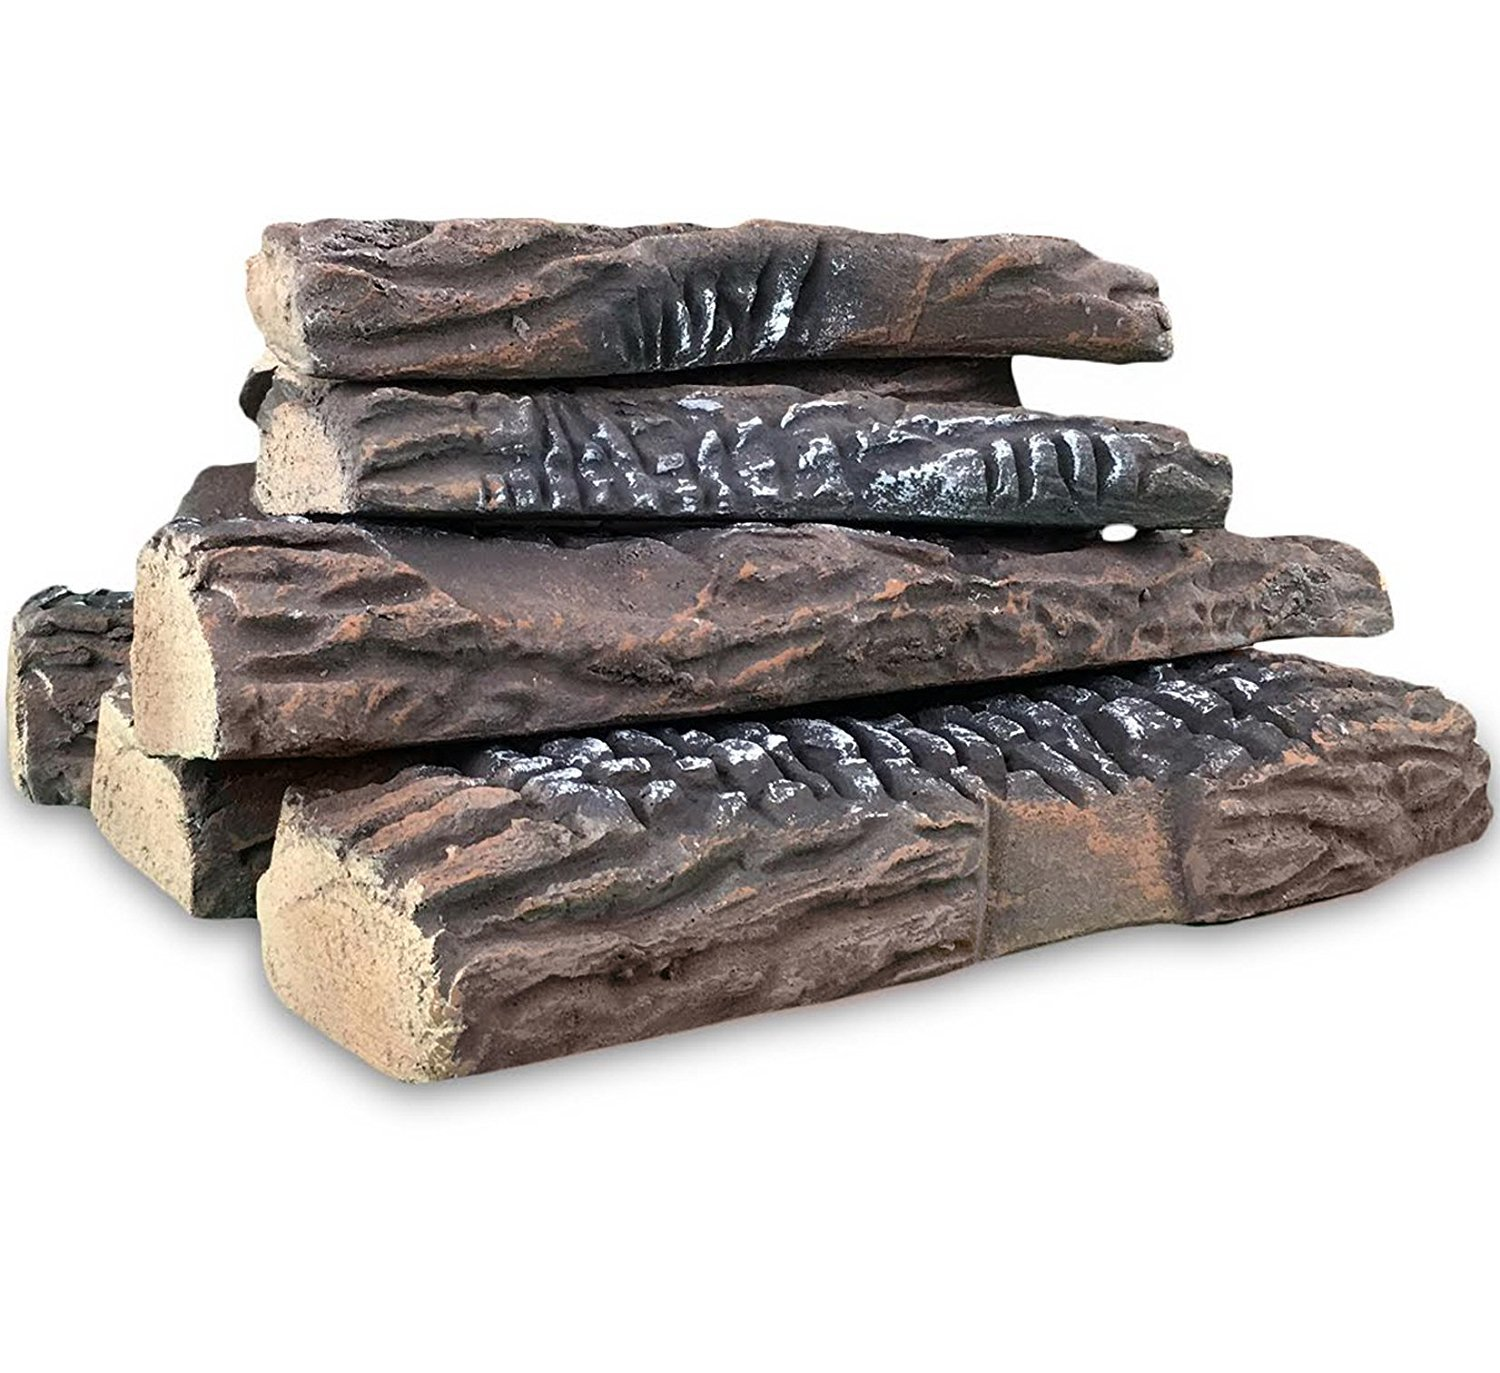 Regal Flame 5 Piece Set of Ceramic Wood Large Gas Fireplace Logs Logs For All Types of Indoor, Gas Inserts, Ventless & Vent Free, Propane, Gel, Ethanol, Electric, or Outdoor Fireplaces & Fire Pits. RFA3005